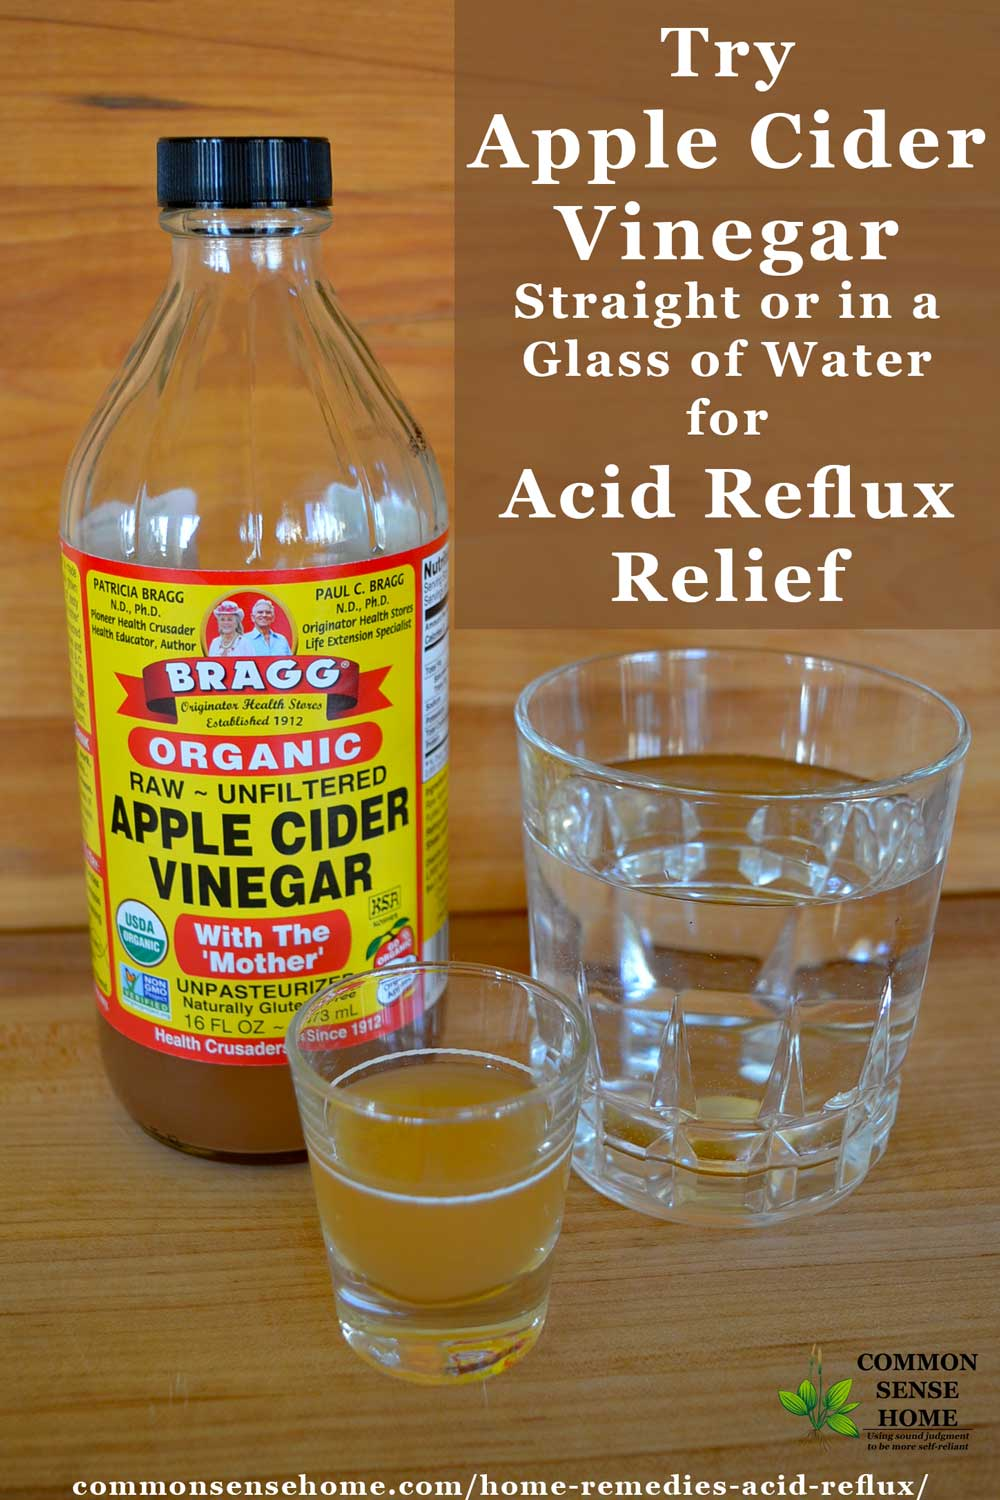 Apple cider vinegar shot glass alongside vinegar bottle and glass of water